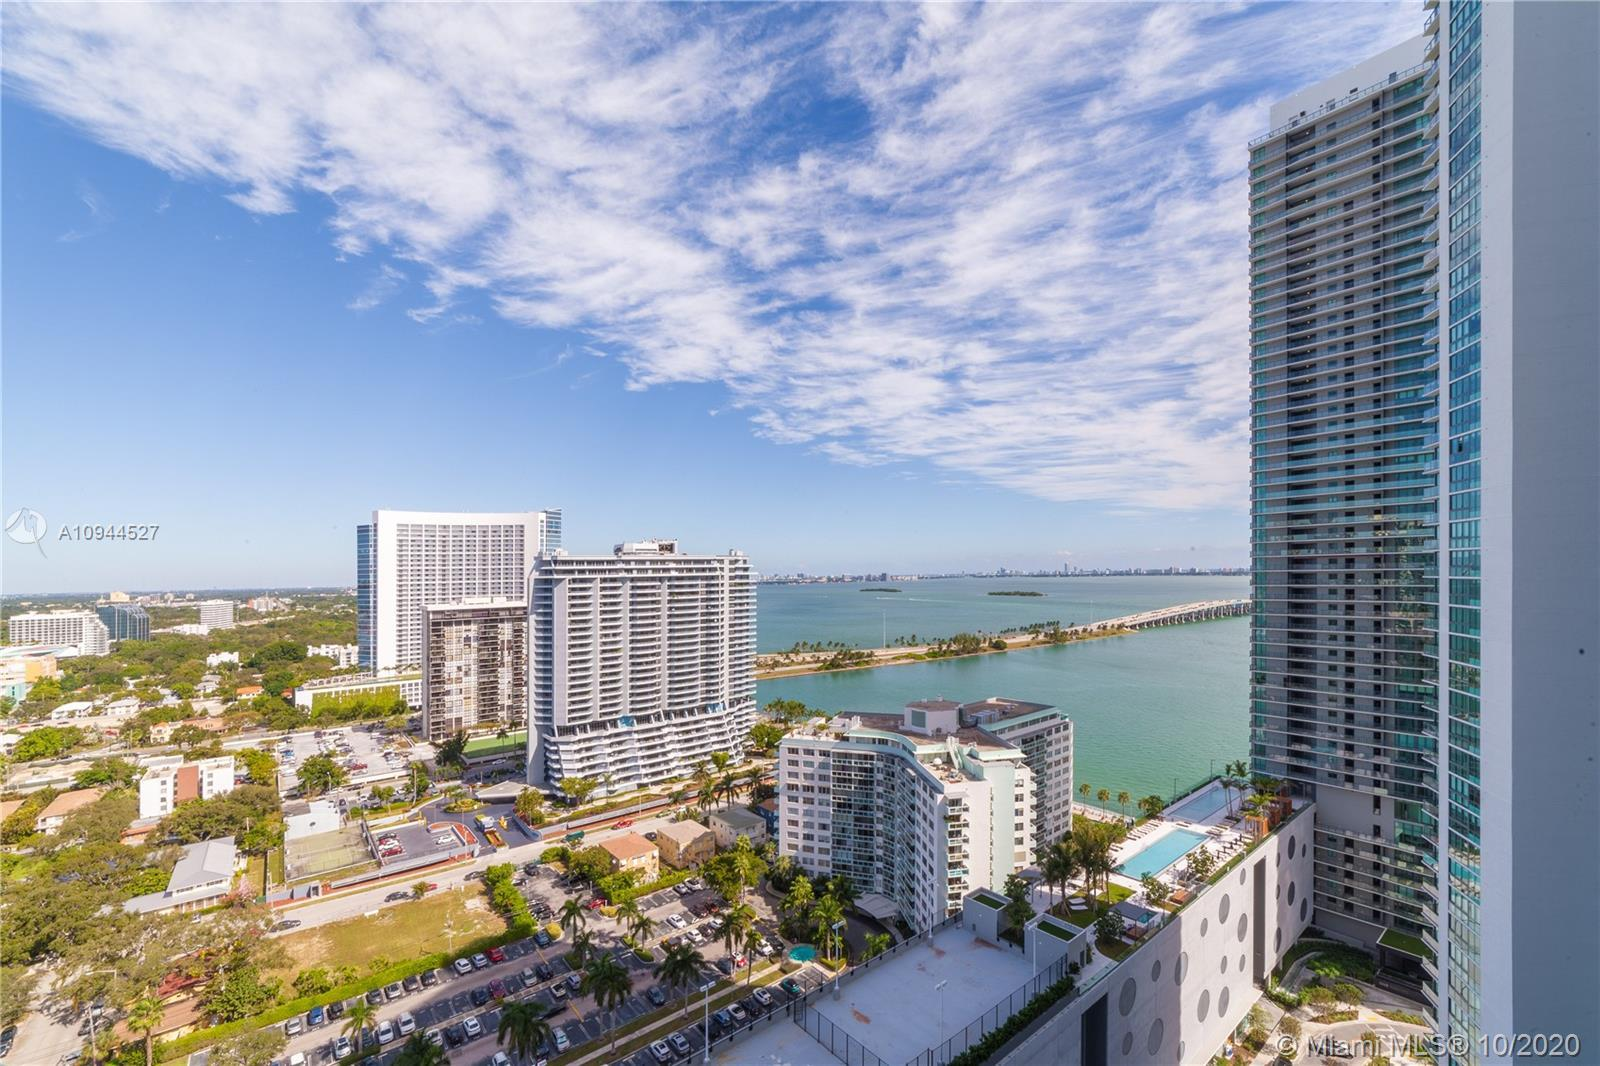 One of the best priced units at the stunning Paraiso Bayviews featuring panoramic Bay and city views